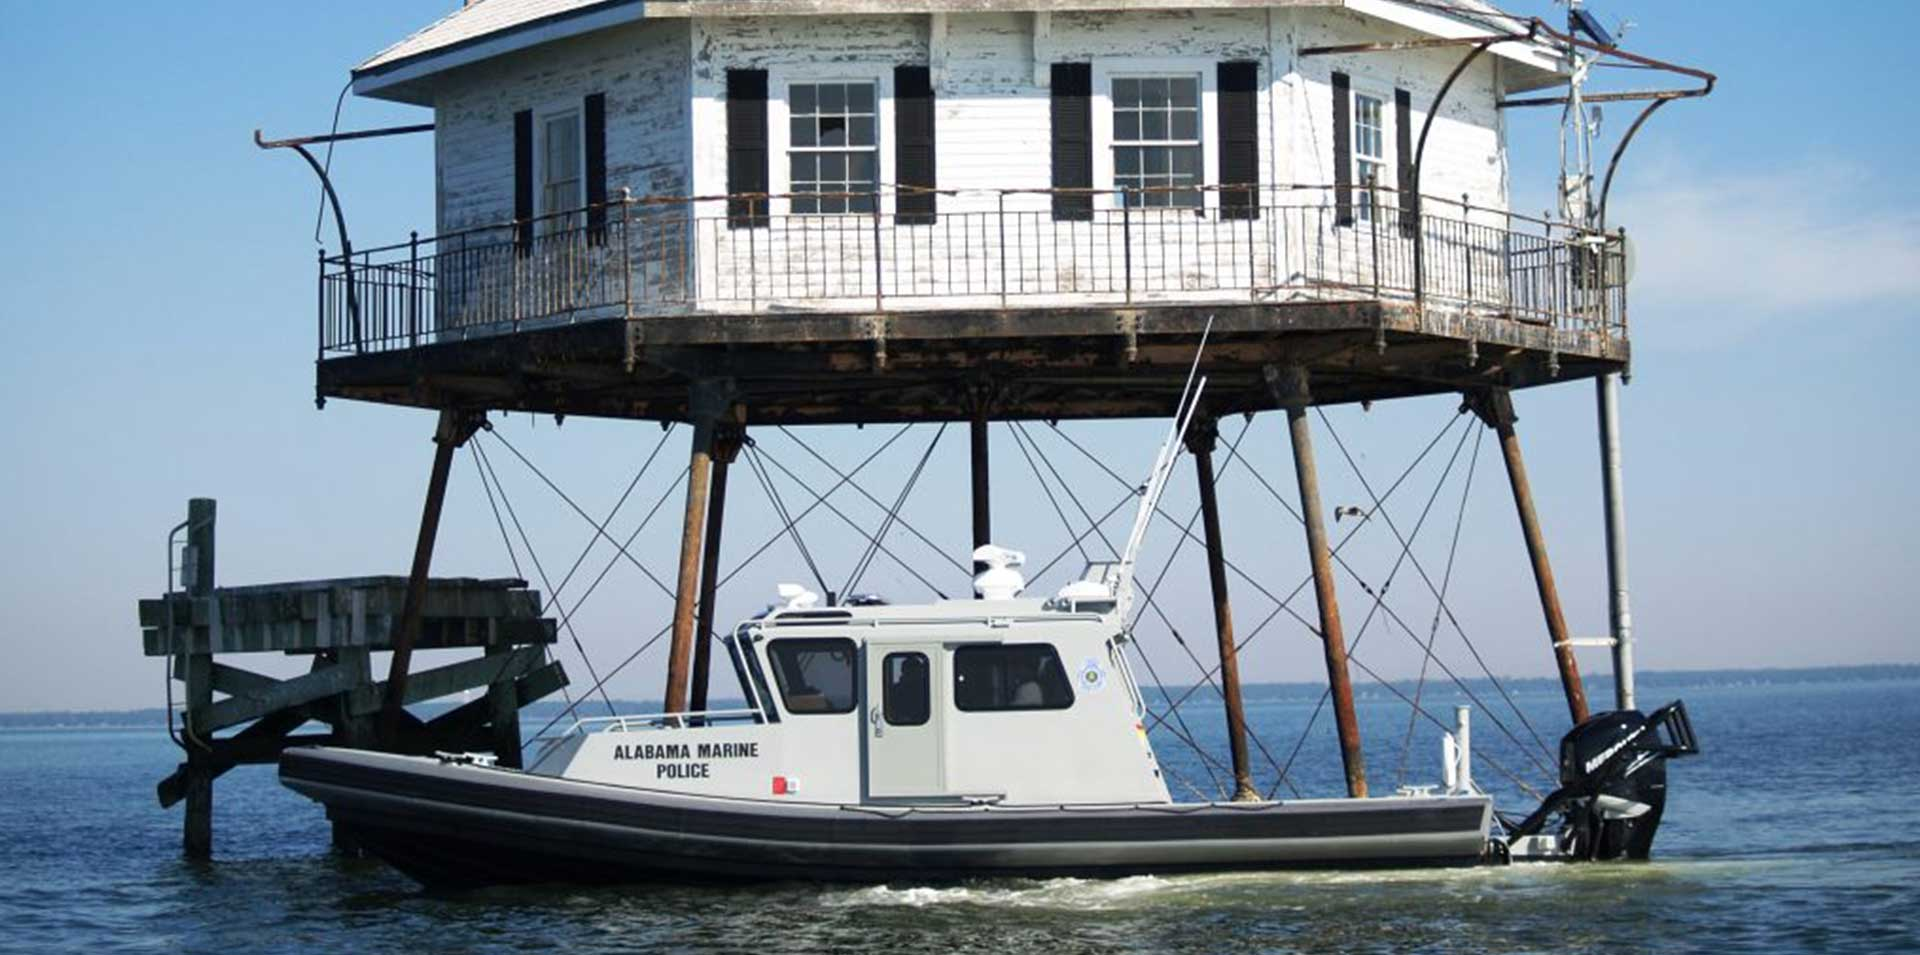 Silver Ships Ambar Am 1100 Alabama Marine Police boat with lighthouse